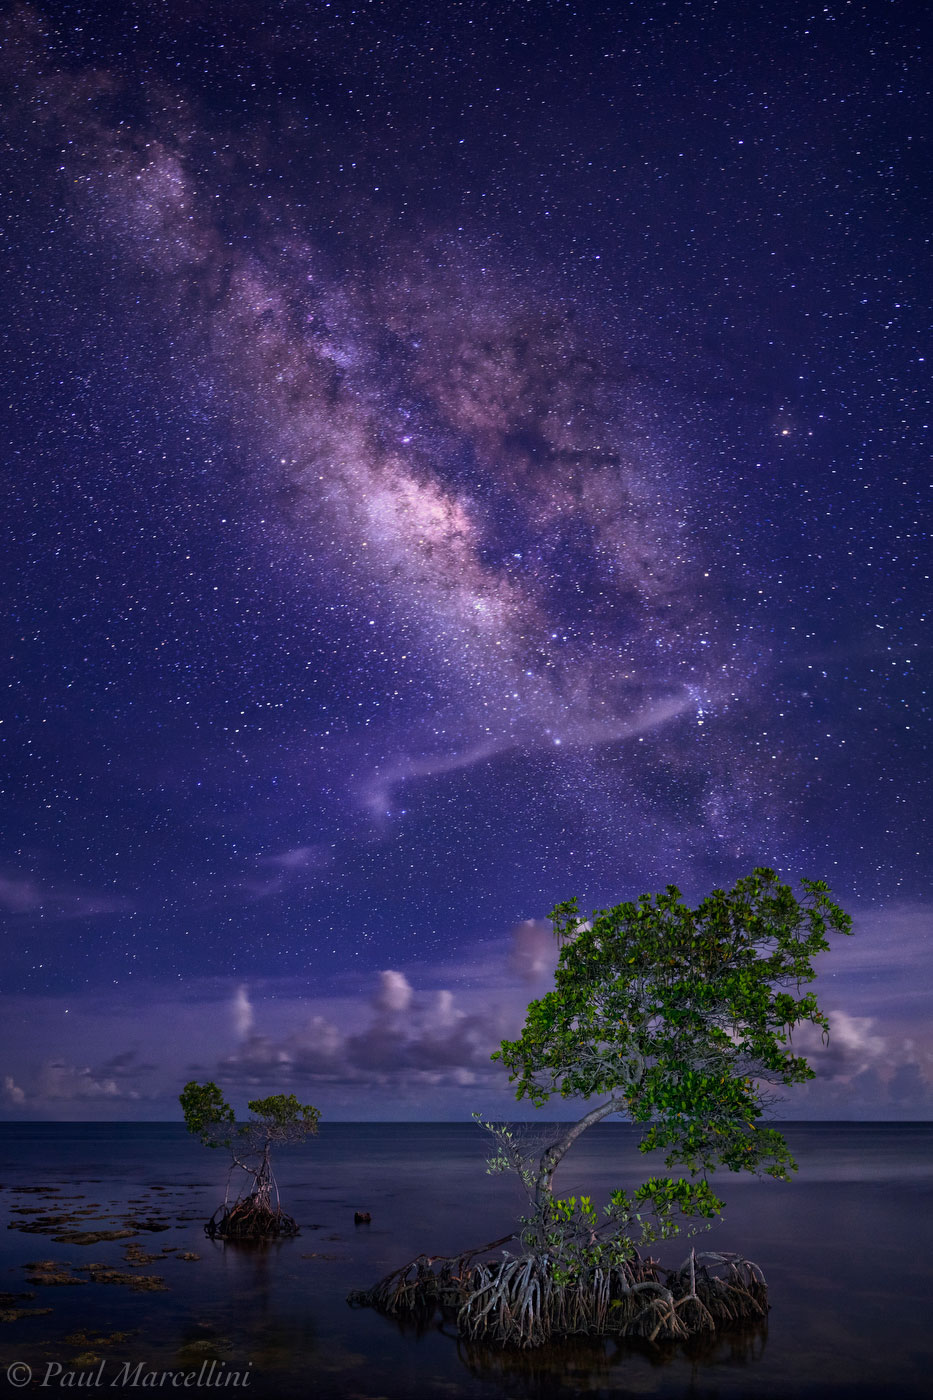 milky way, red mangrove, summer, florida keys, florida, nature, photography, photo